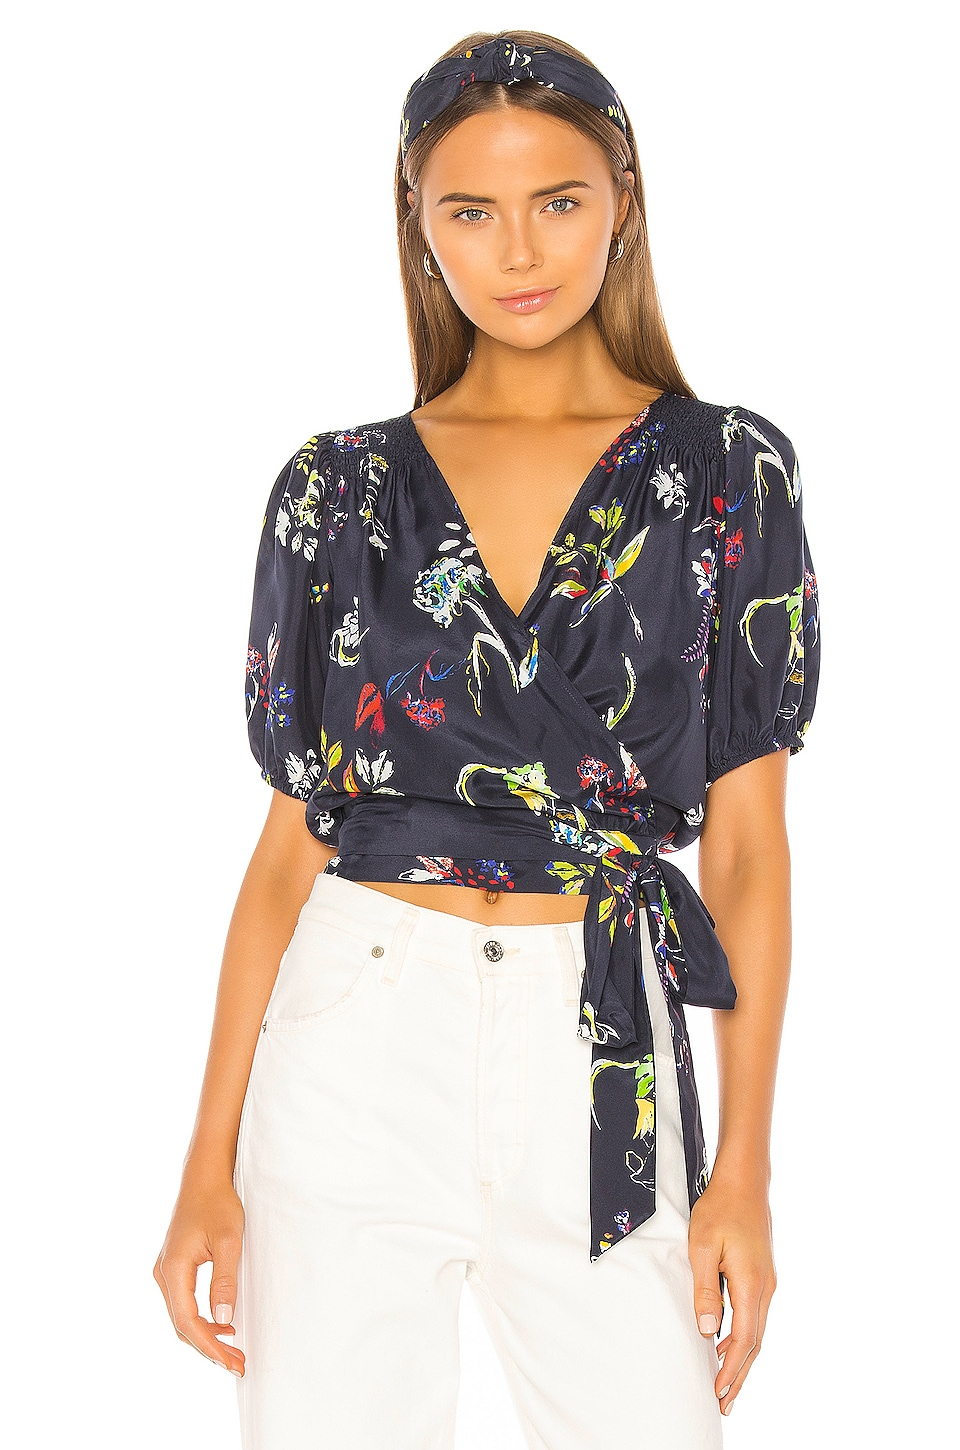 Tanya Taylor Leiria Blouse in Pencil Floral & Navy